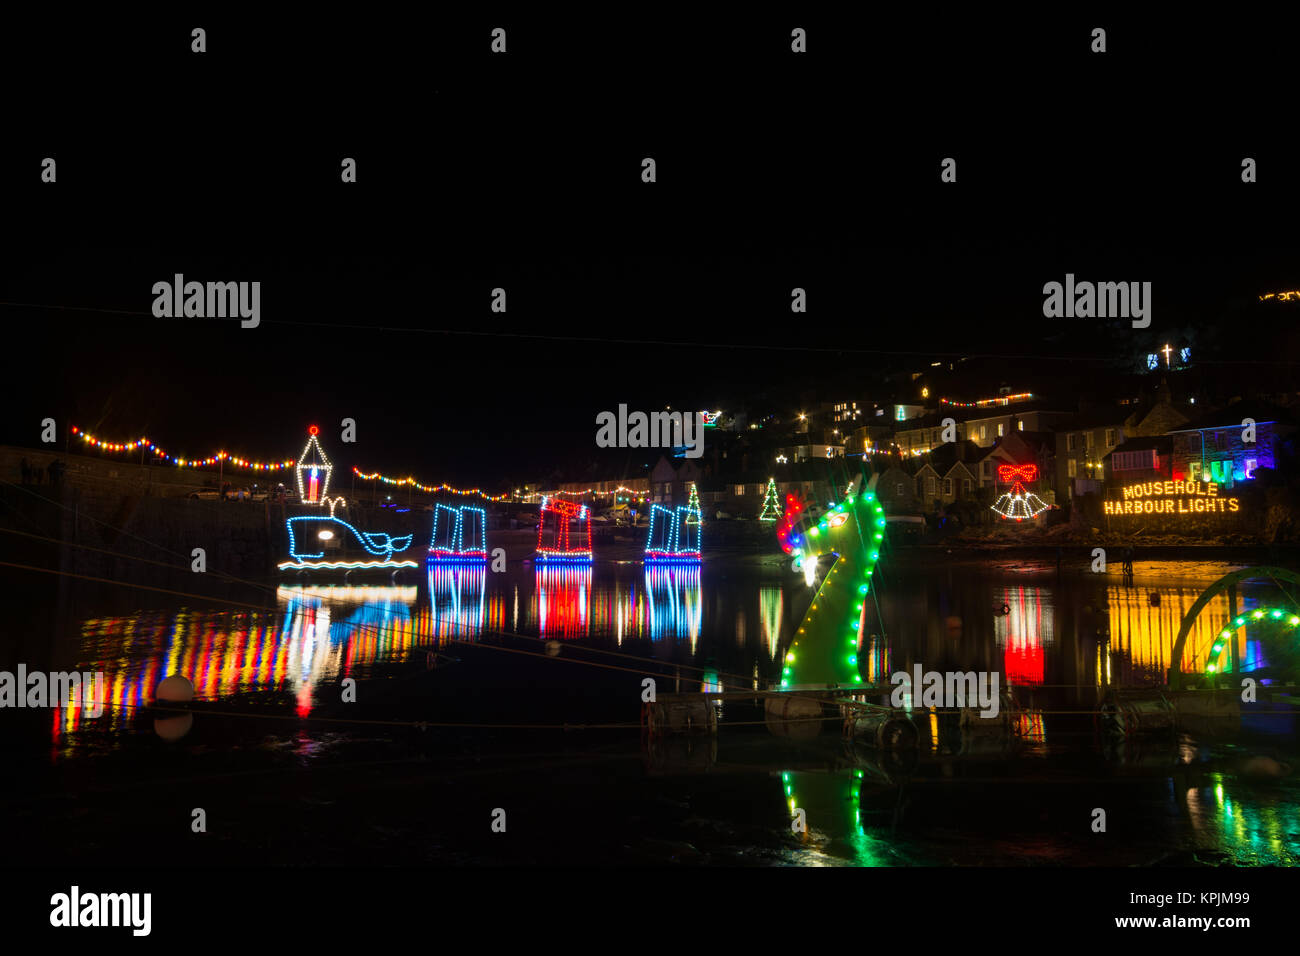 Mousehole, Cornwall, UK. 16th December 2017. This evening saw the 54th turn on of the annual Mousehole Christmas - Stock Image